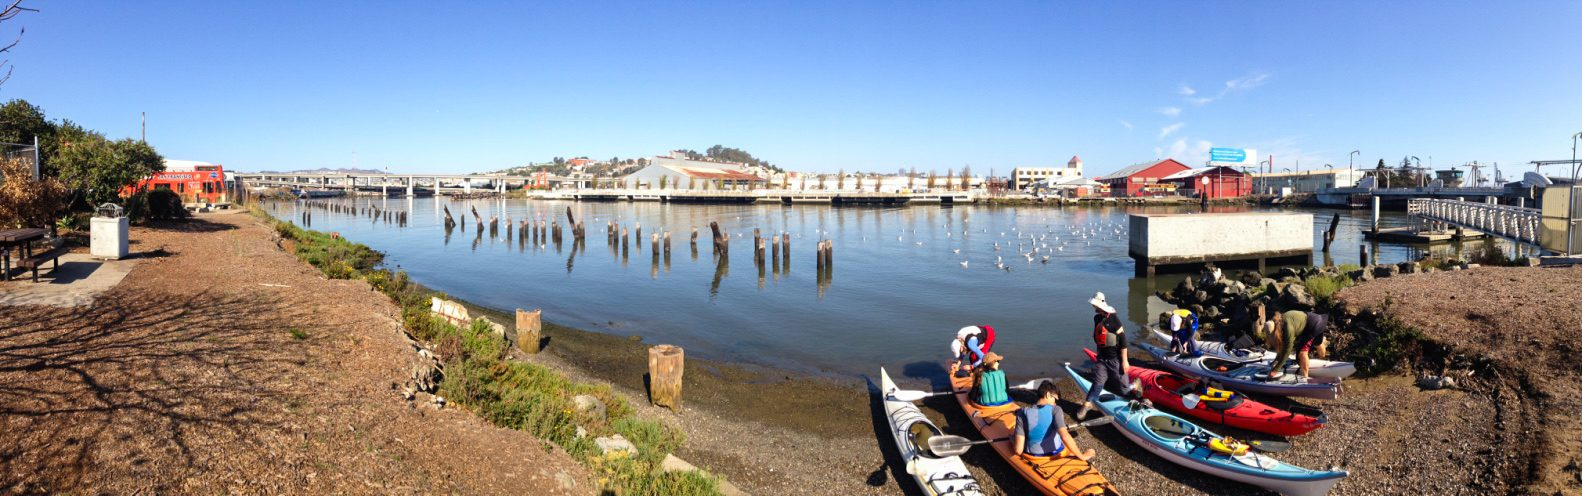 Group of kayakers pulled ashore on small pebbly beach, with rows of rotted pilings offshore